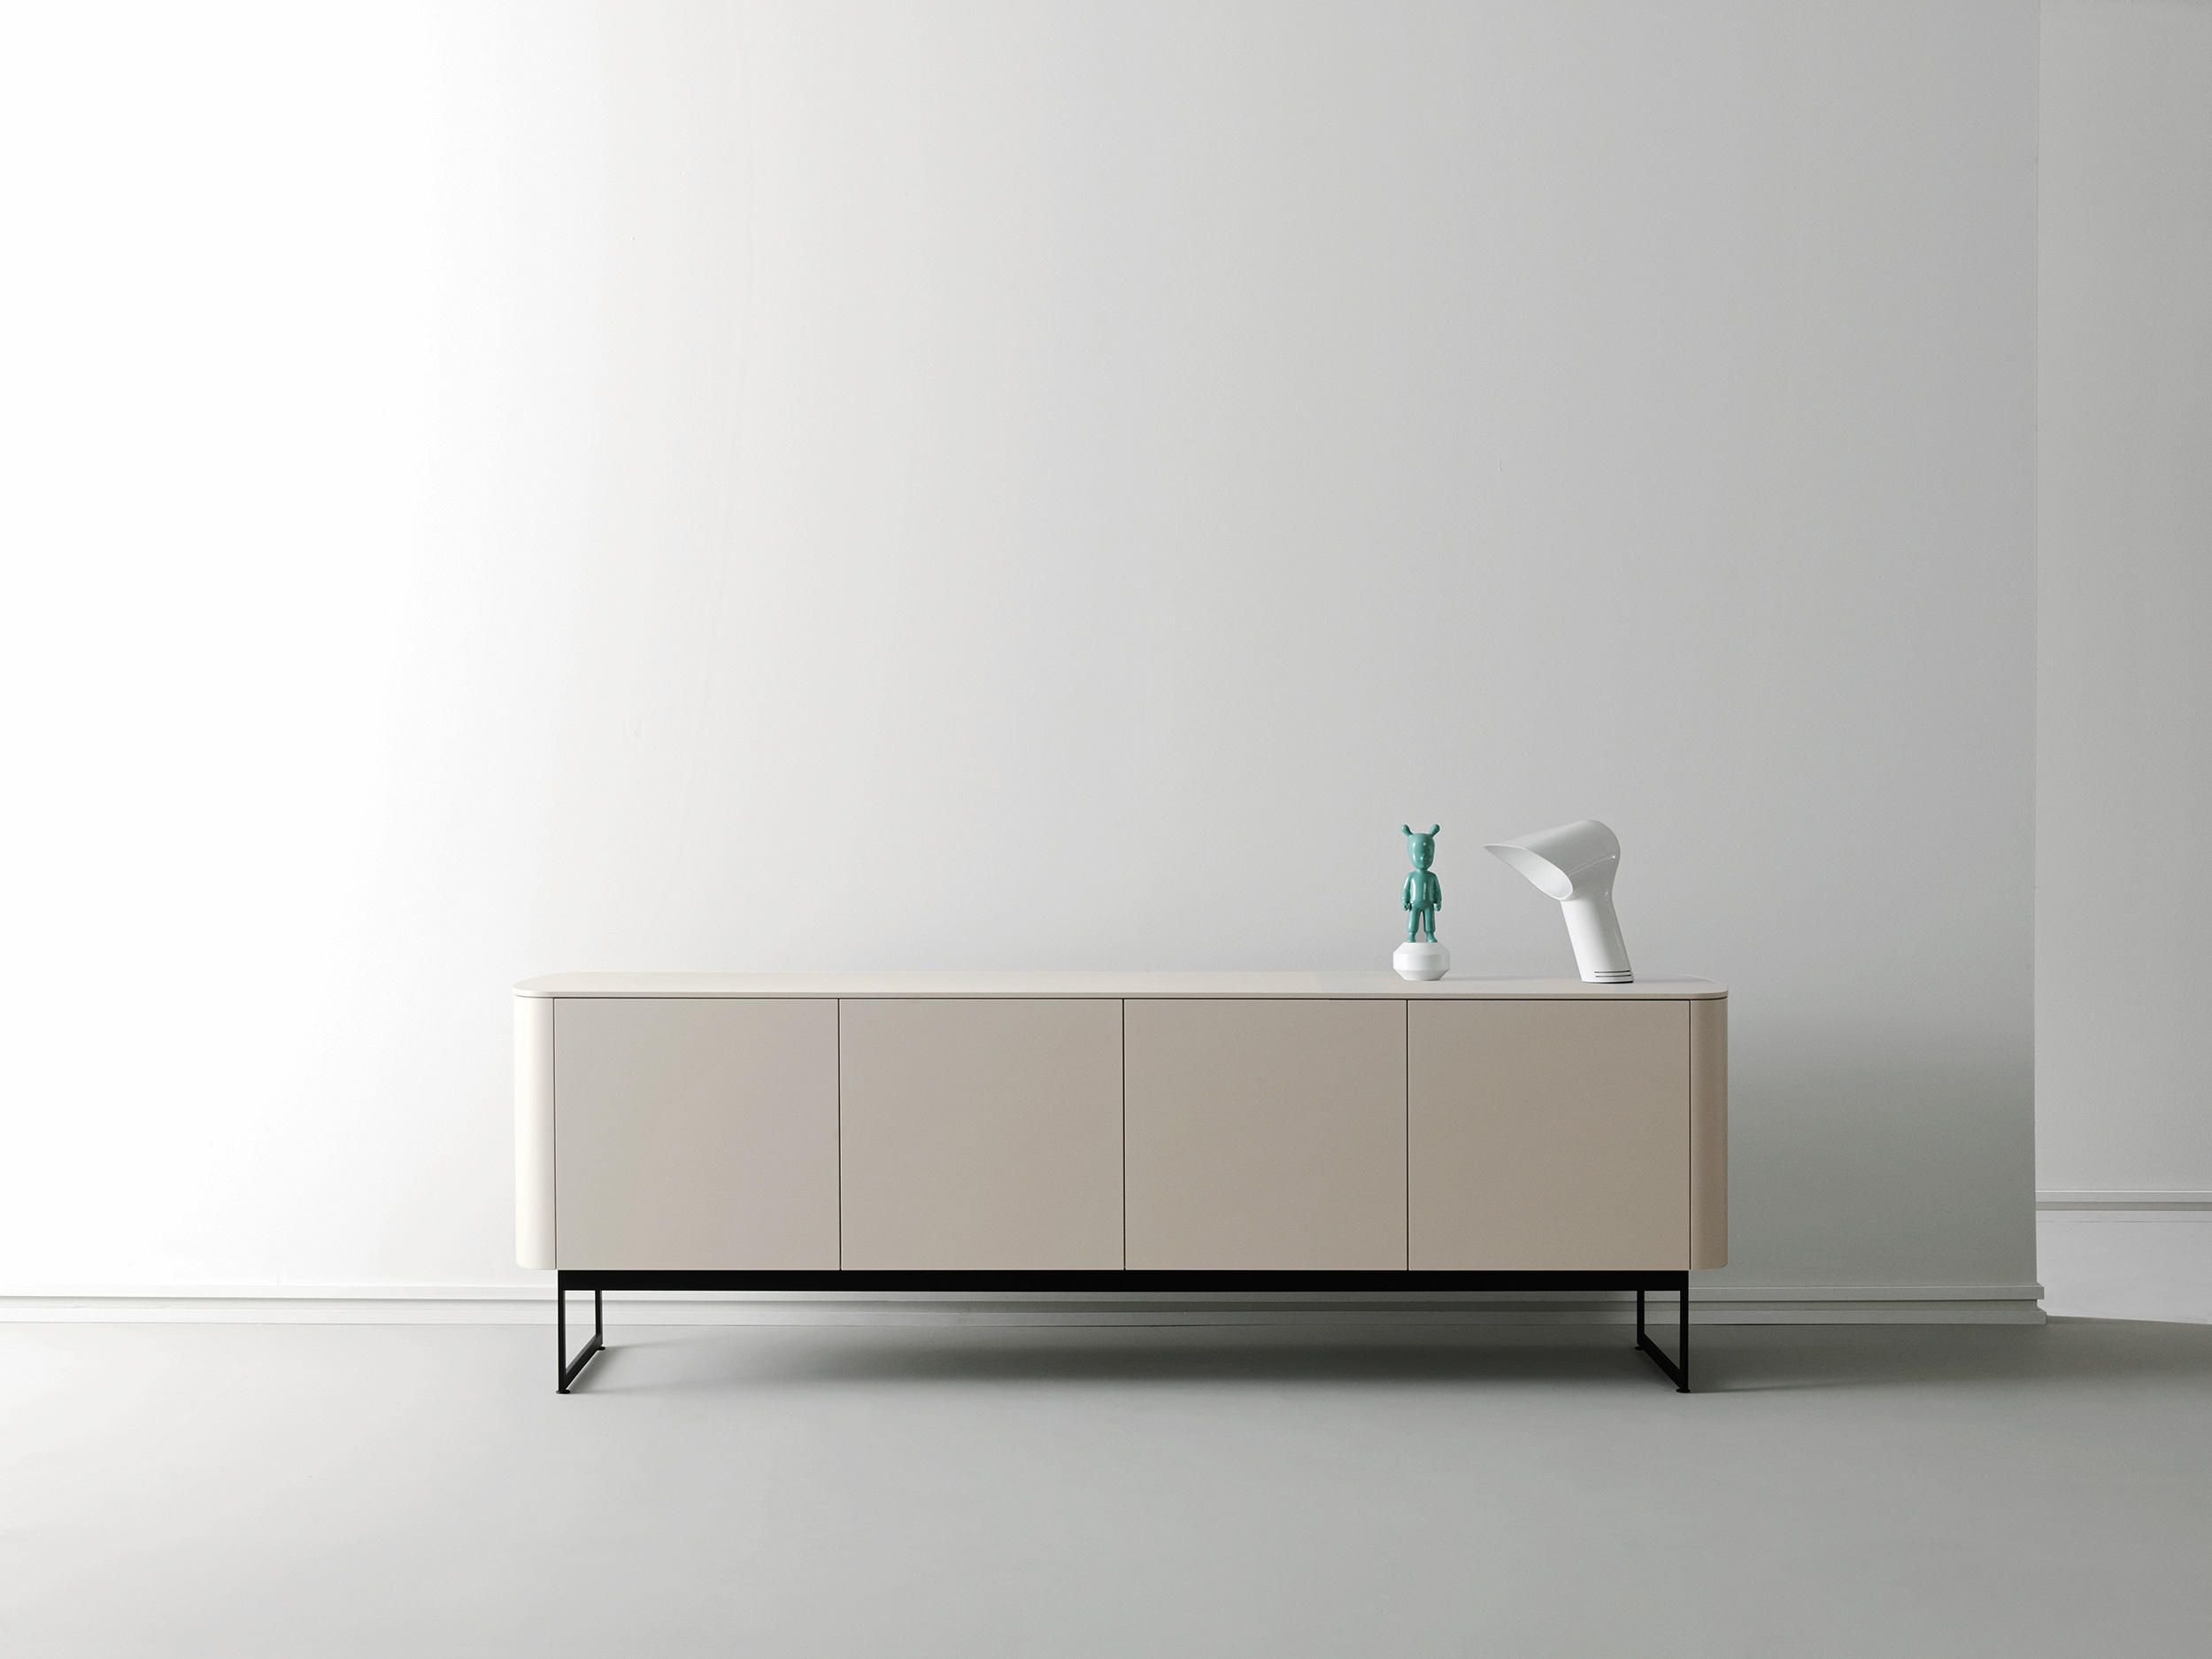 Sideview Side Designer Sideboards From Caccaro All Information High Resolution Images Cads Catalogues Furniture Sideboard Designs Cabinet Furniture